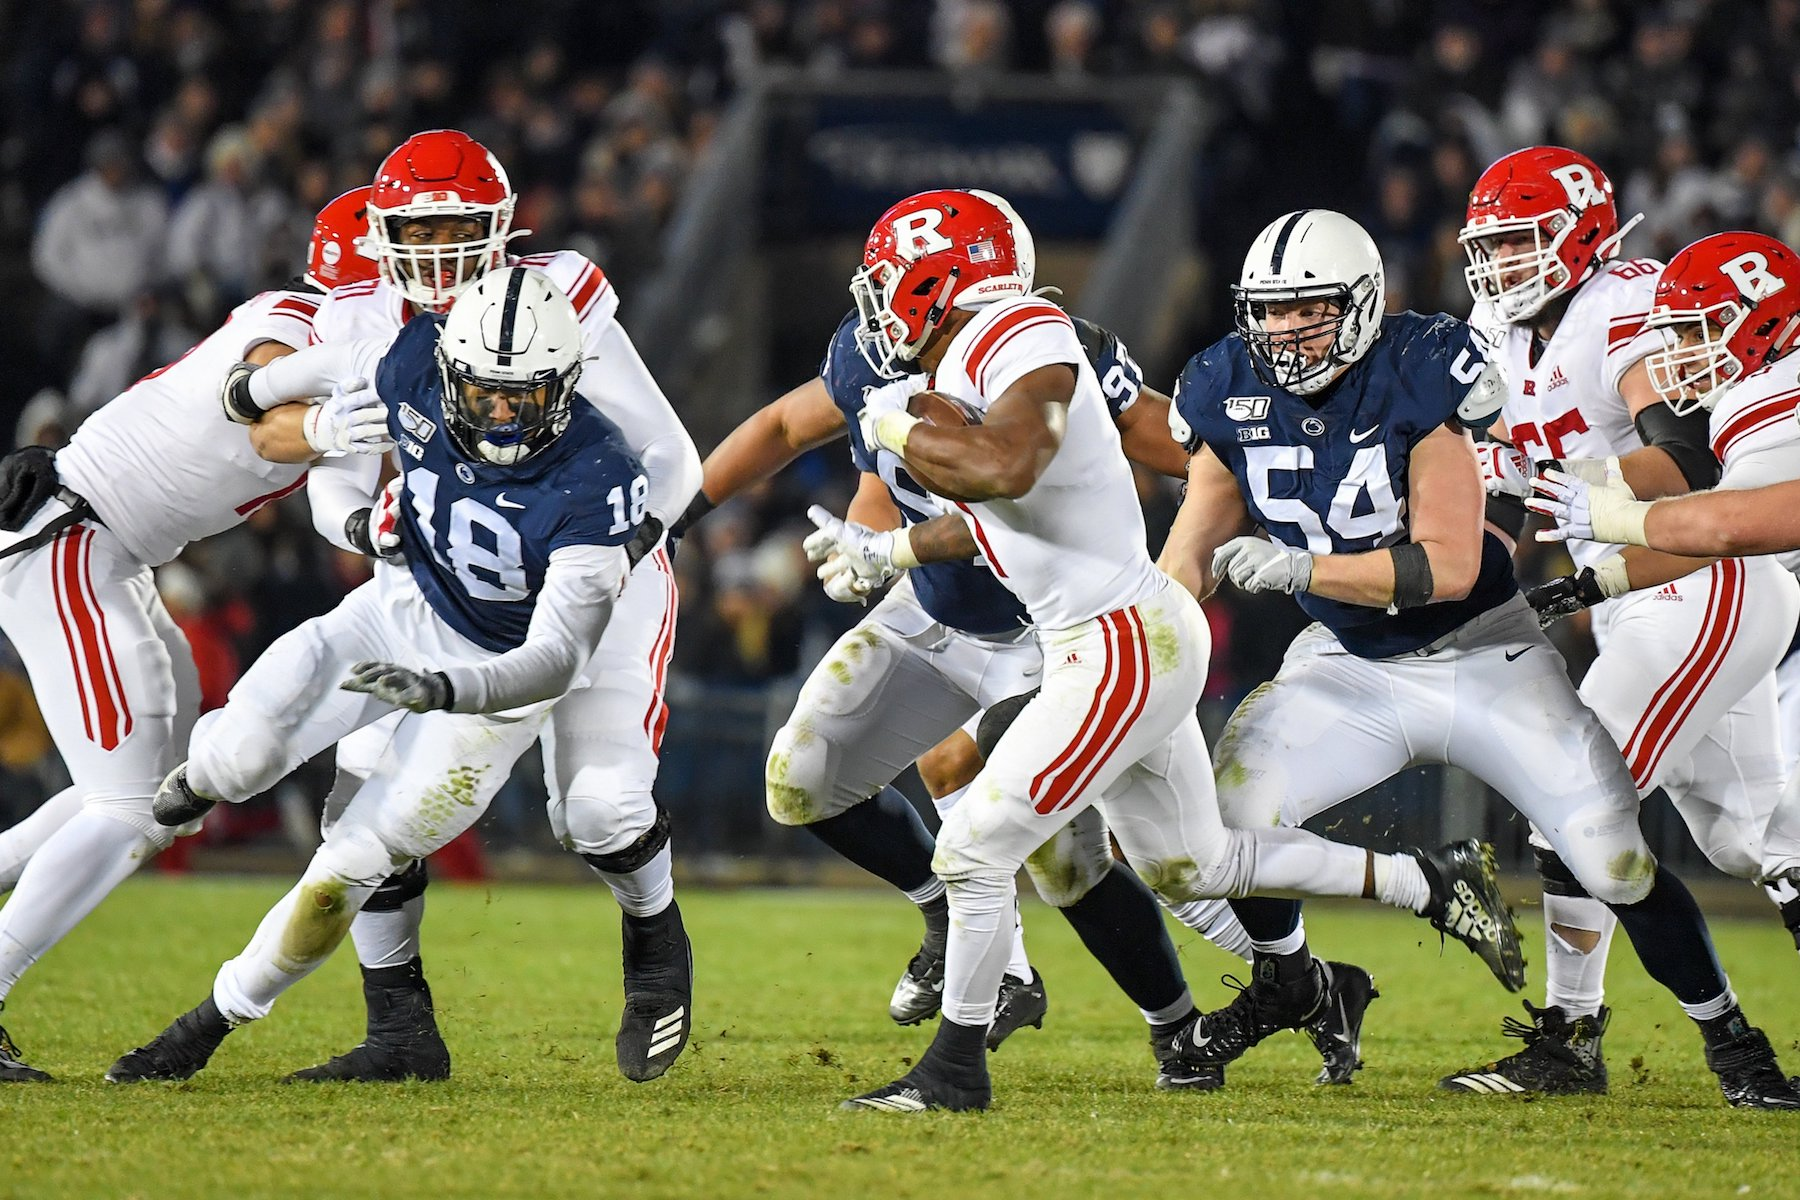 Nittany Lions Finish Season Strong